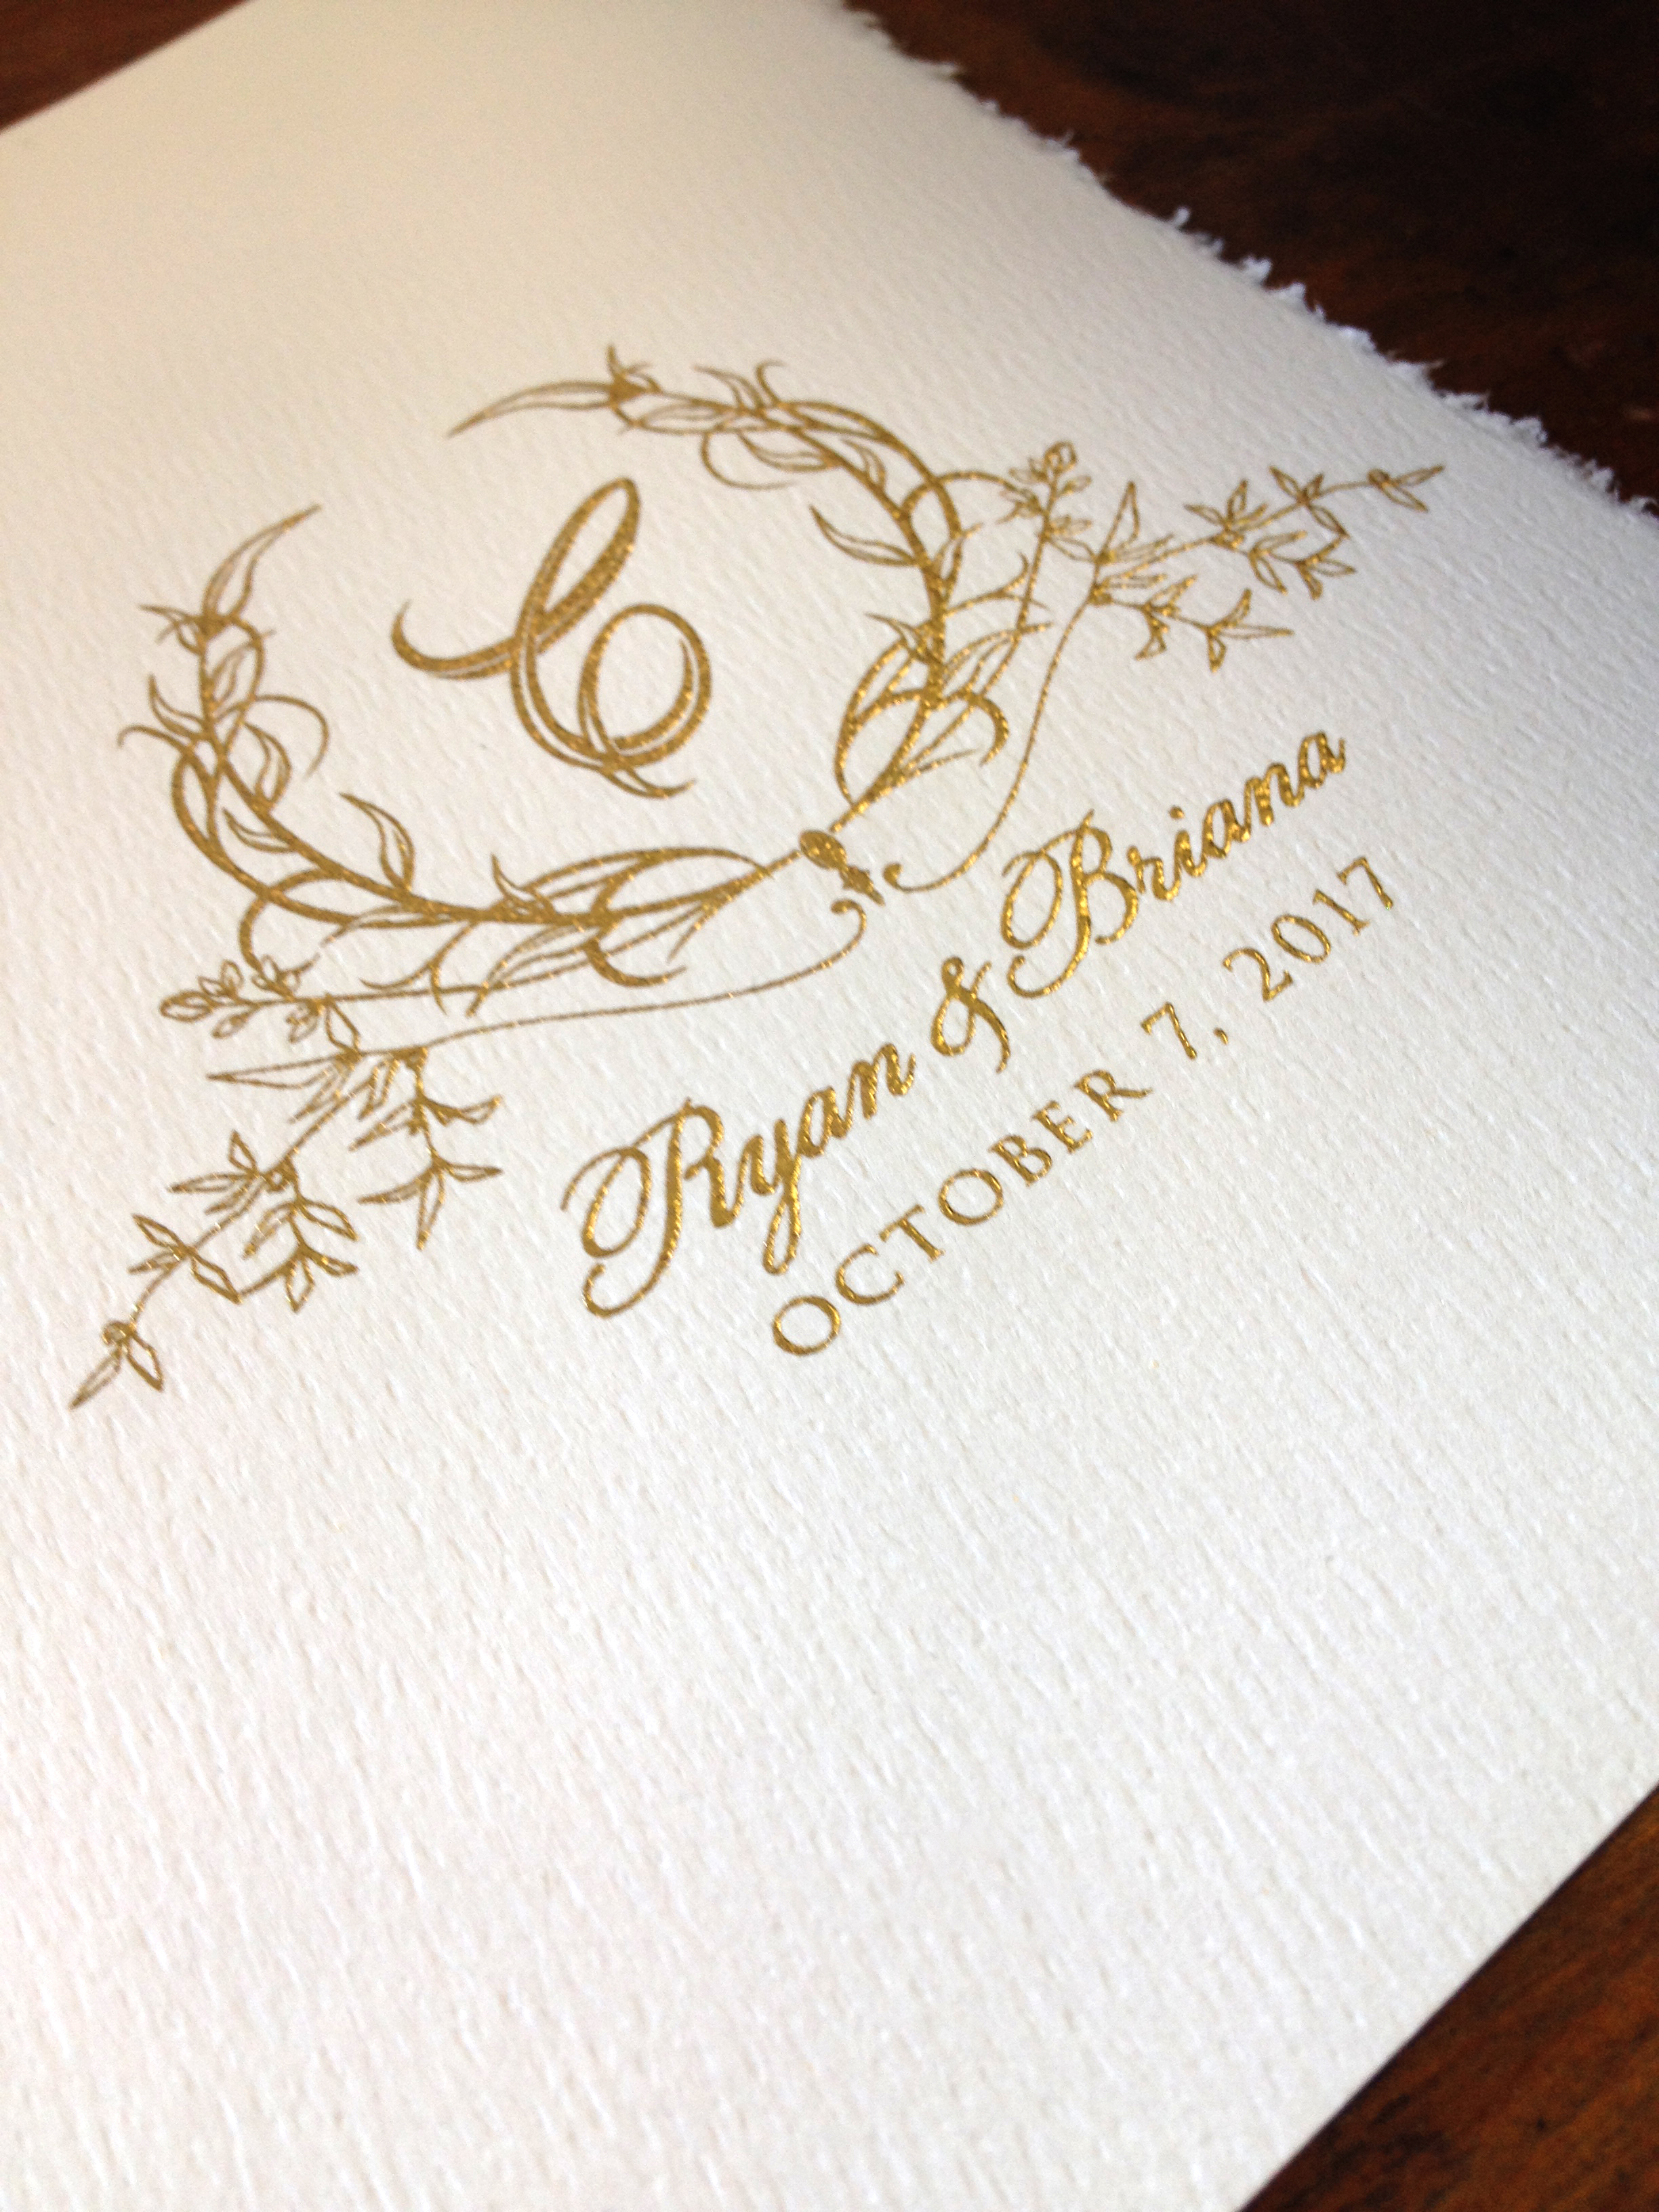 caligraphy-gold-thermnography-deckle-paper-texture.JPG